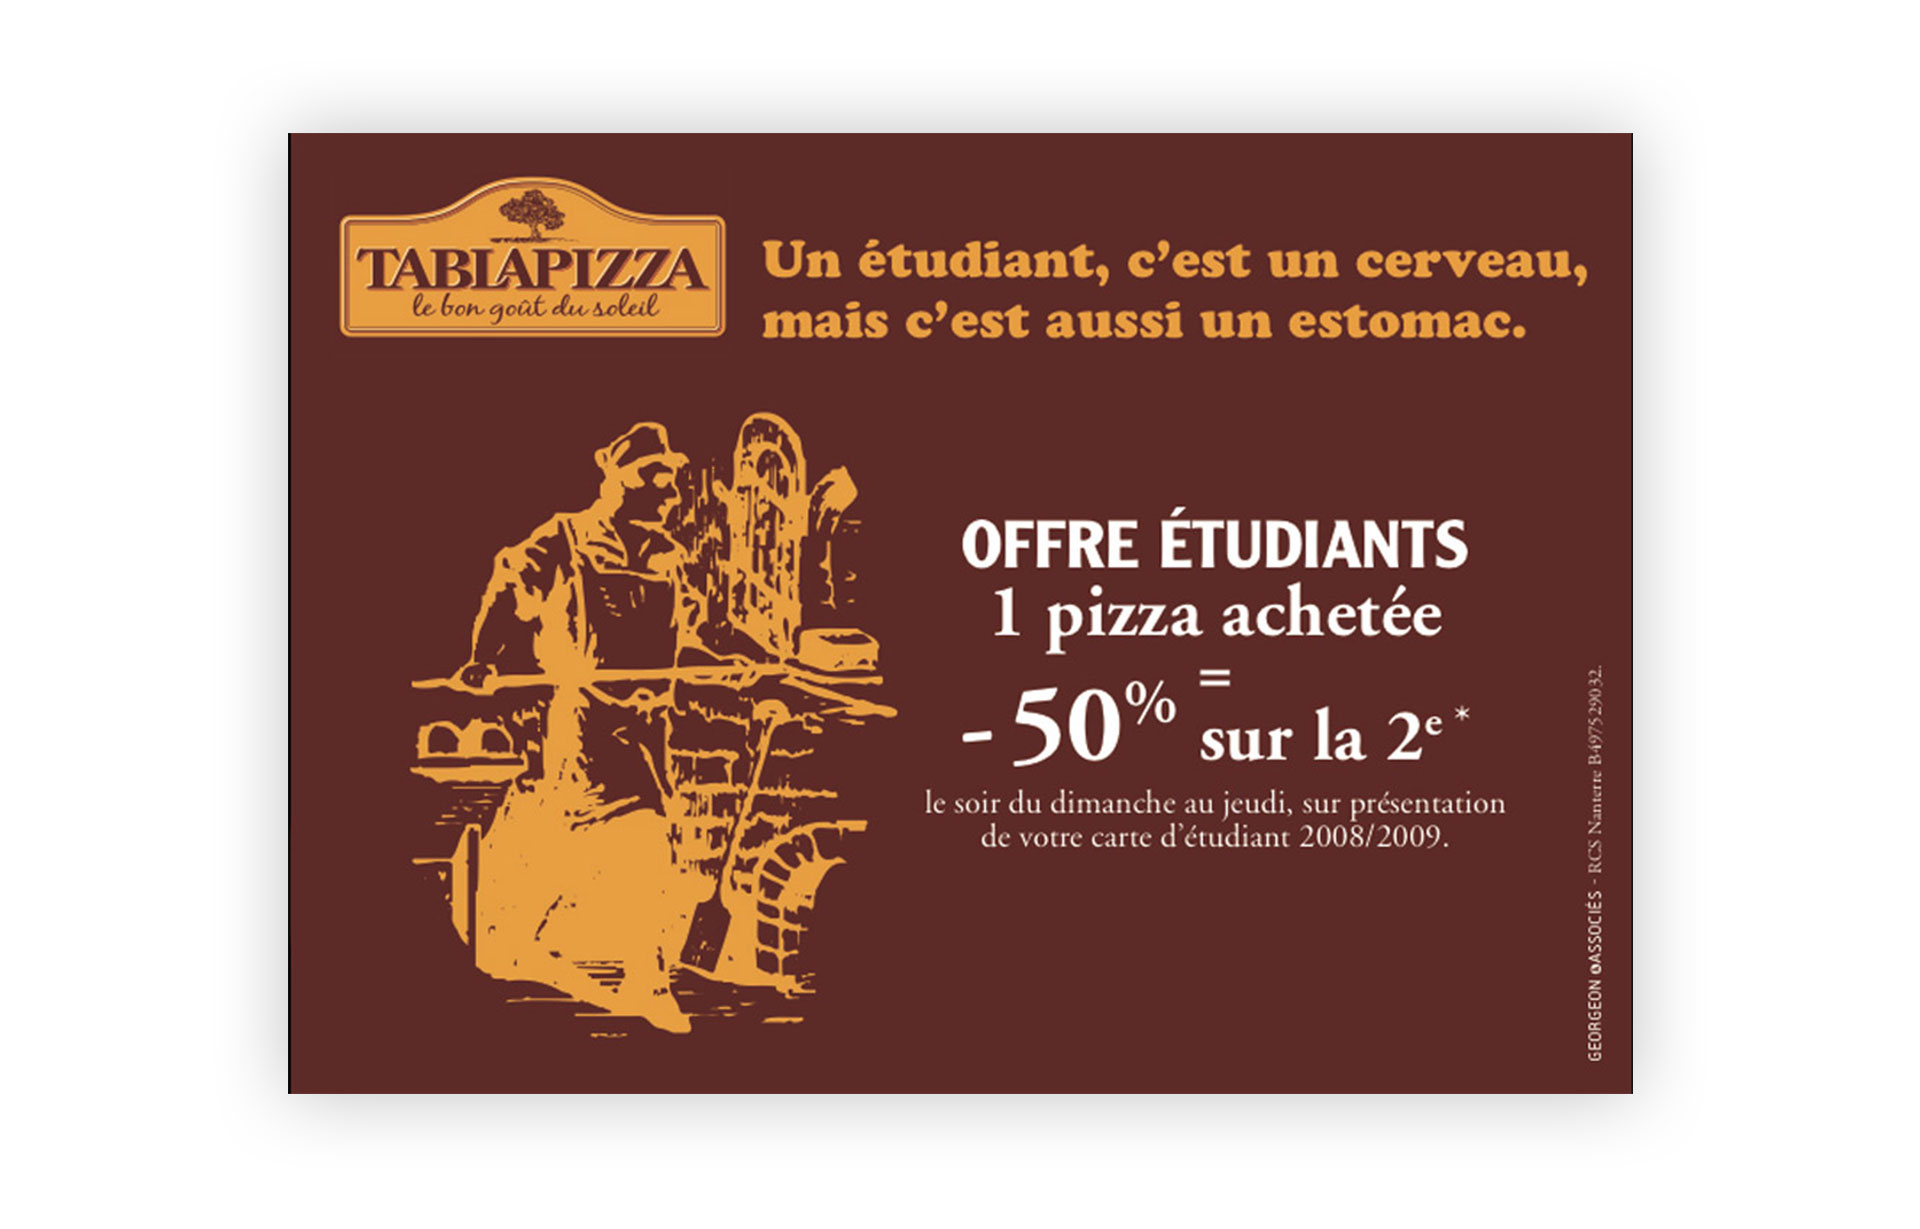 Georgeon-et-associes_agence-creation-presse_tablapizza_01